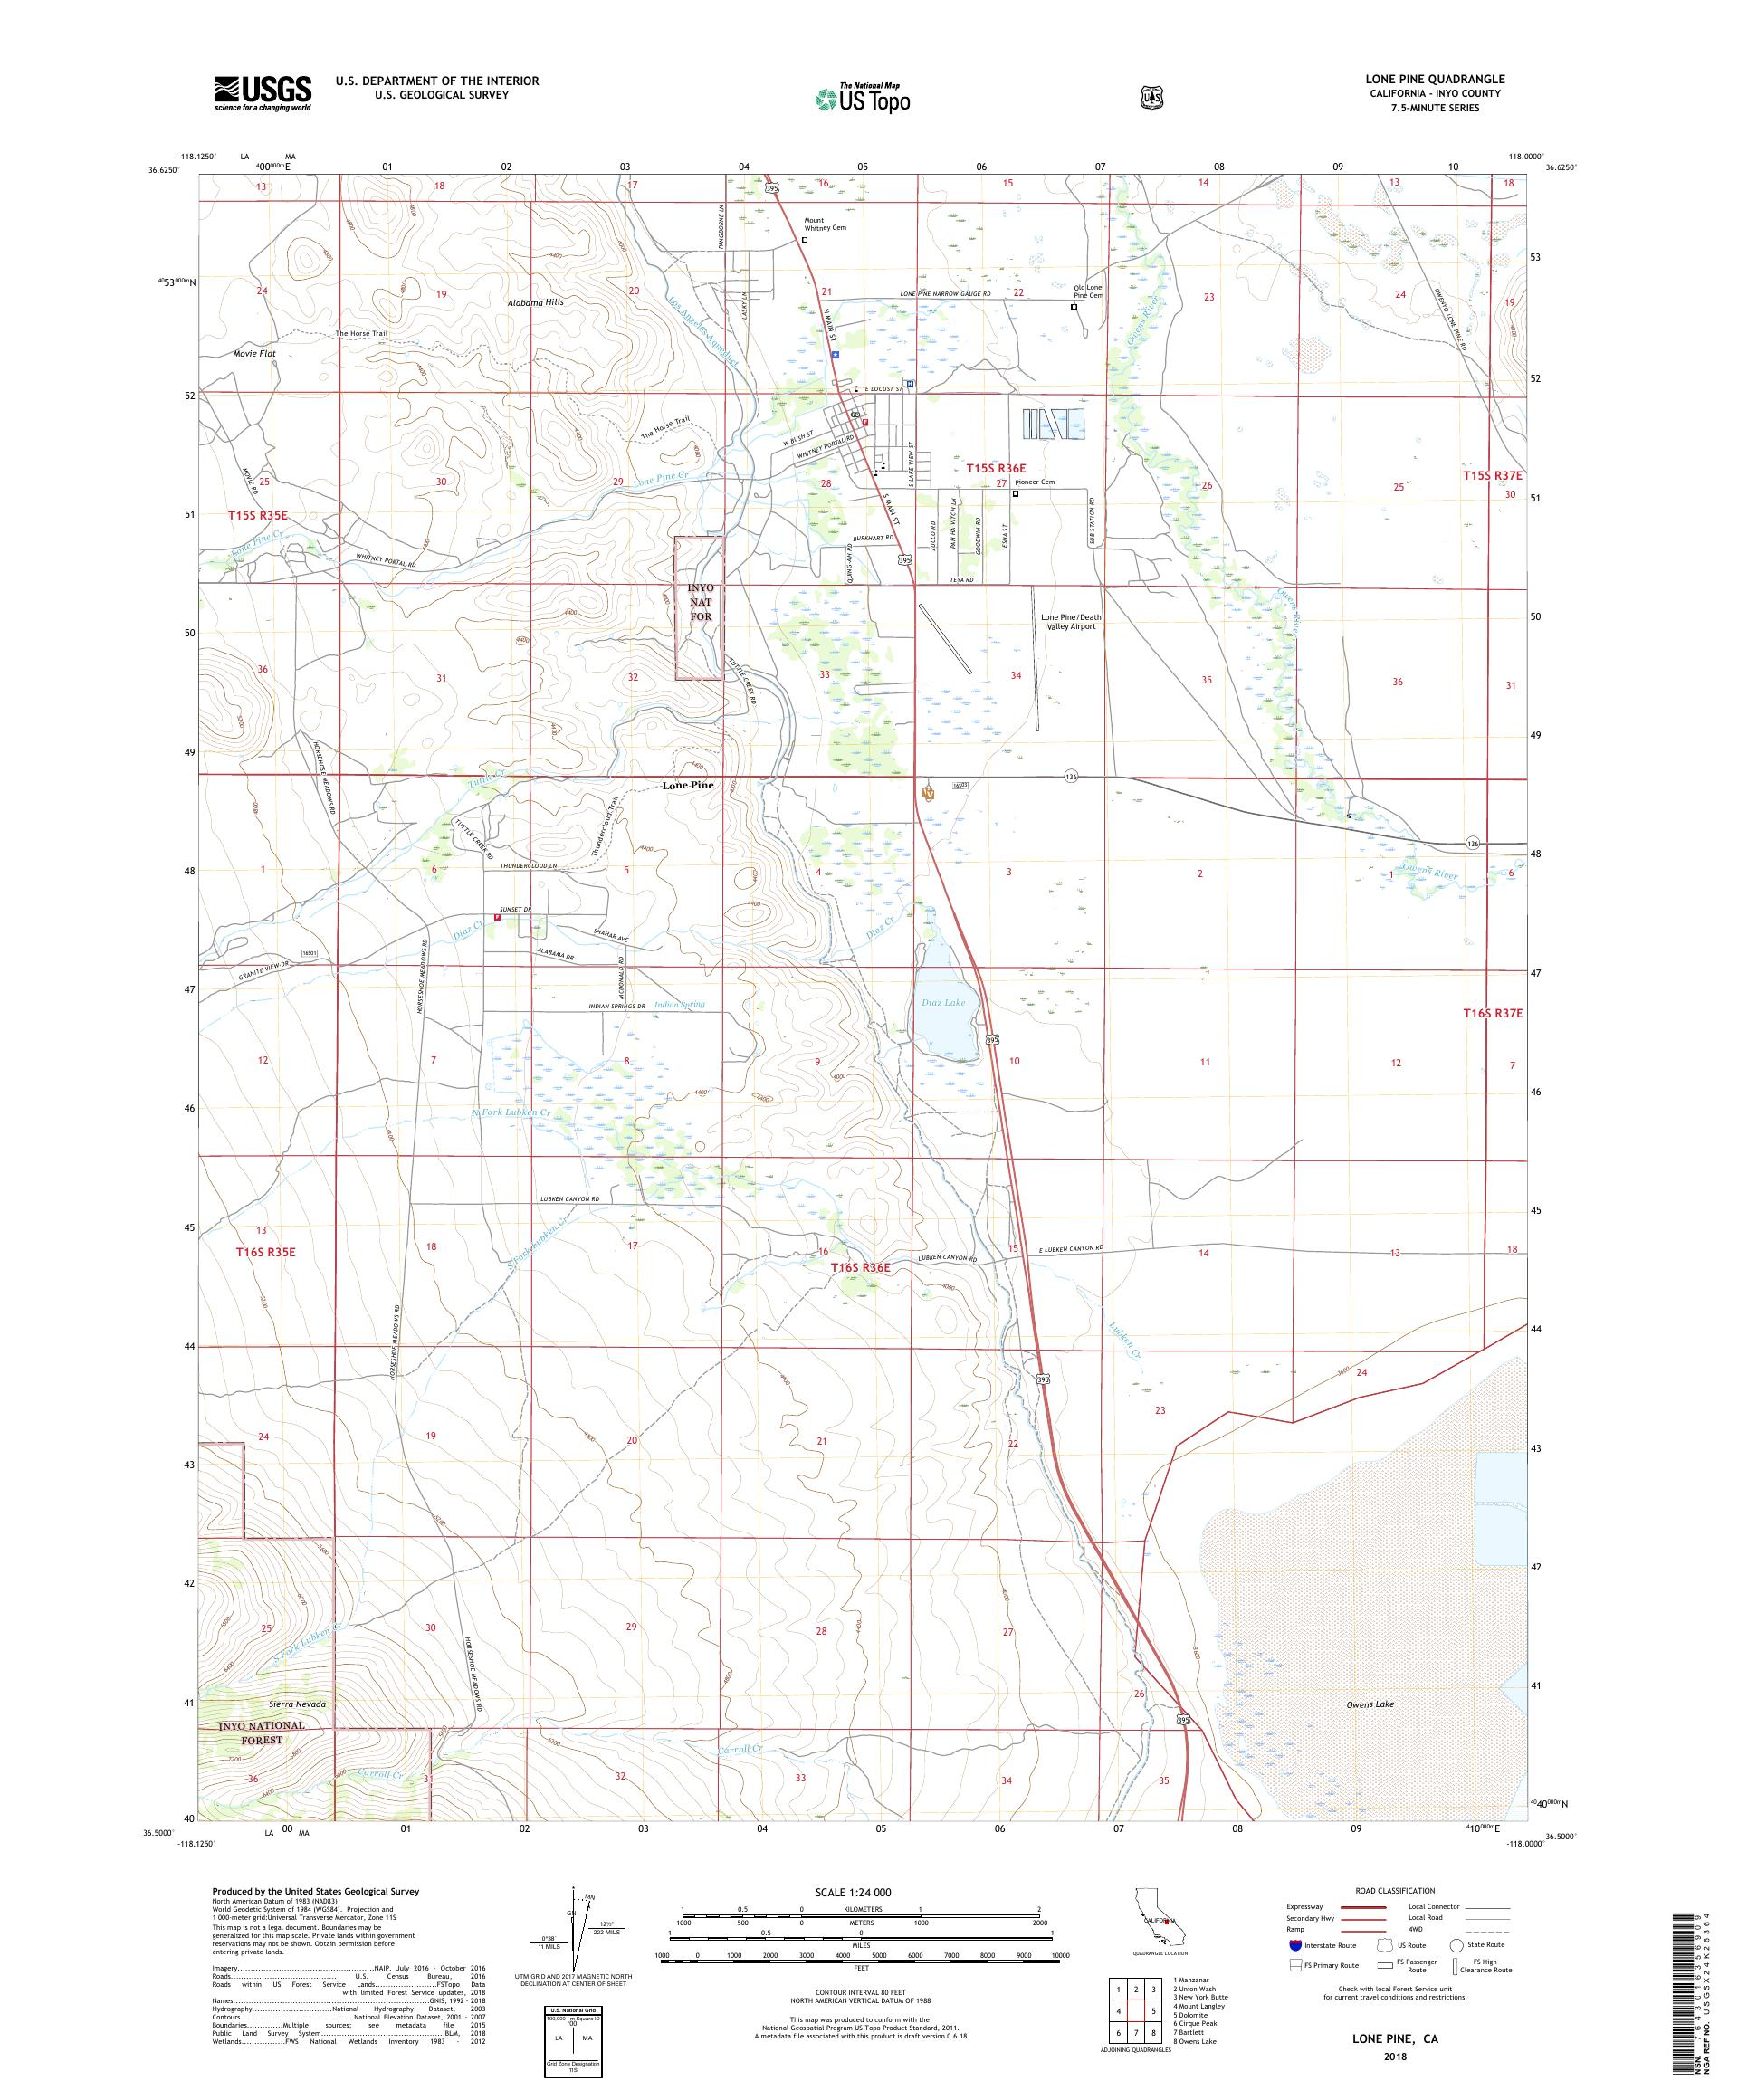 MyTopo Lone Pine, California USGS Quad Topo Map